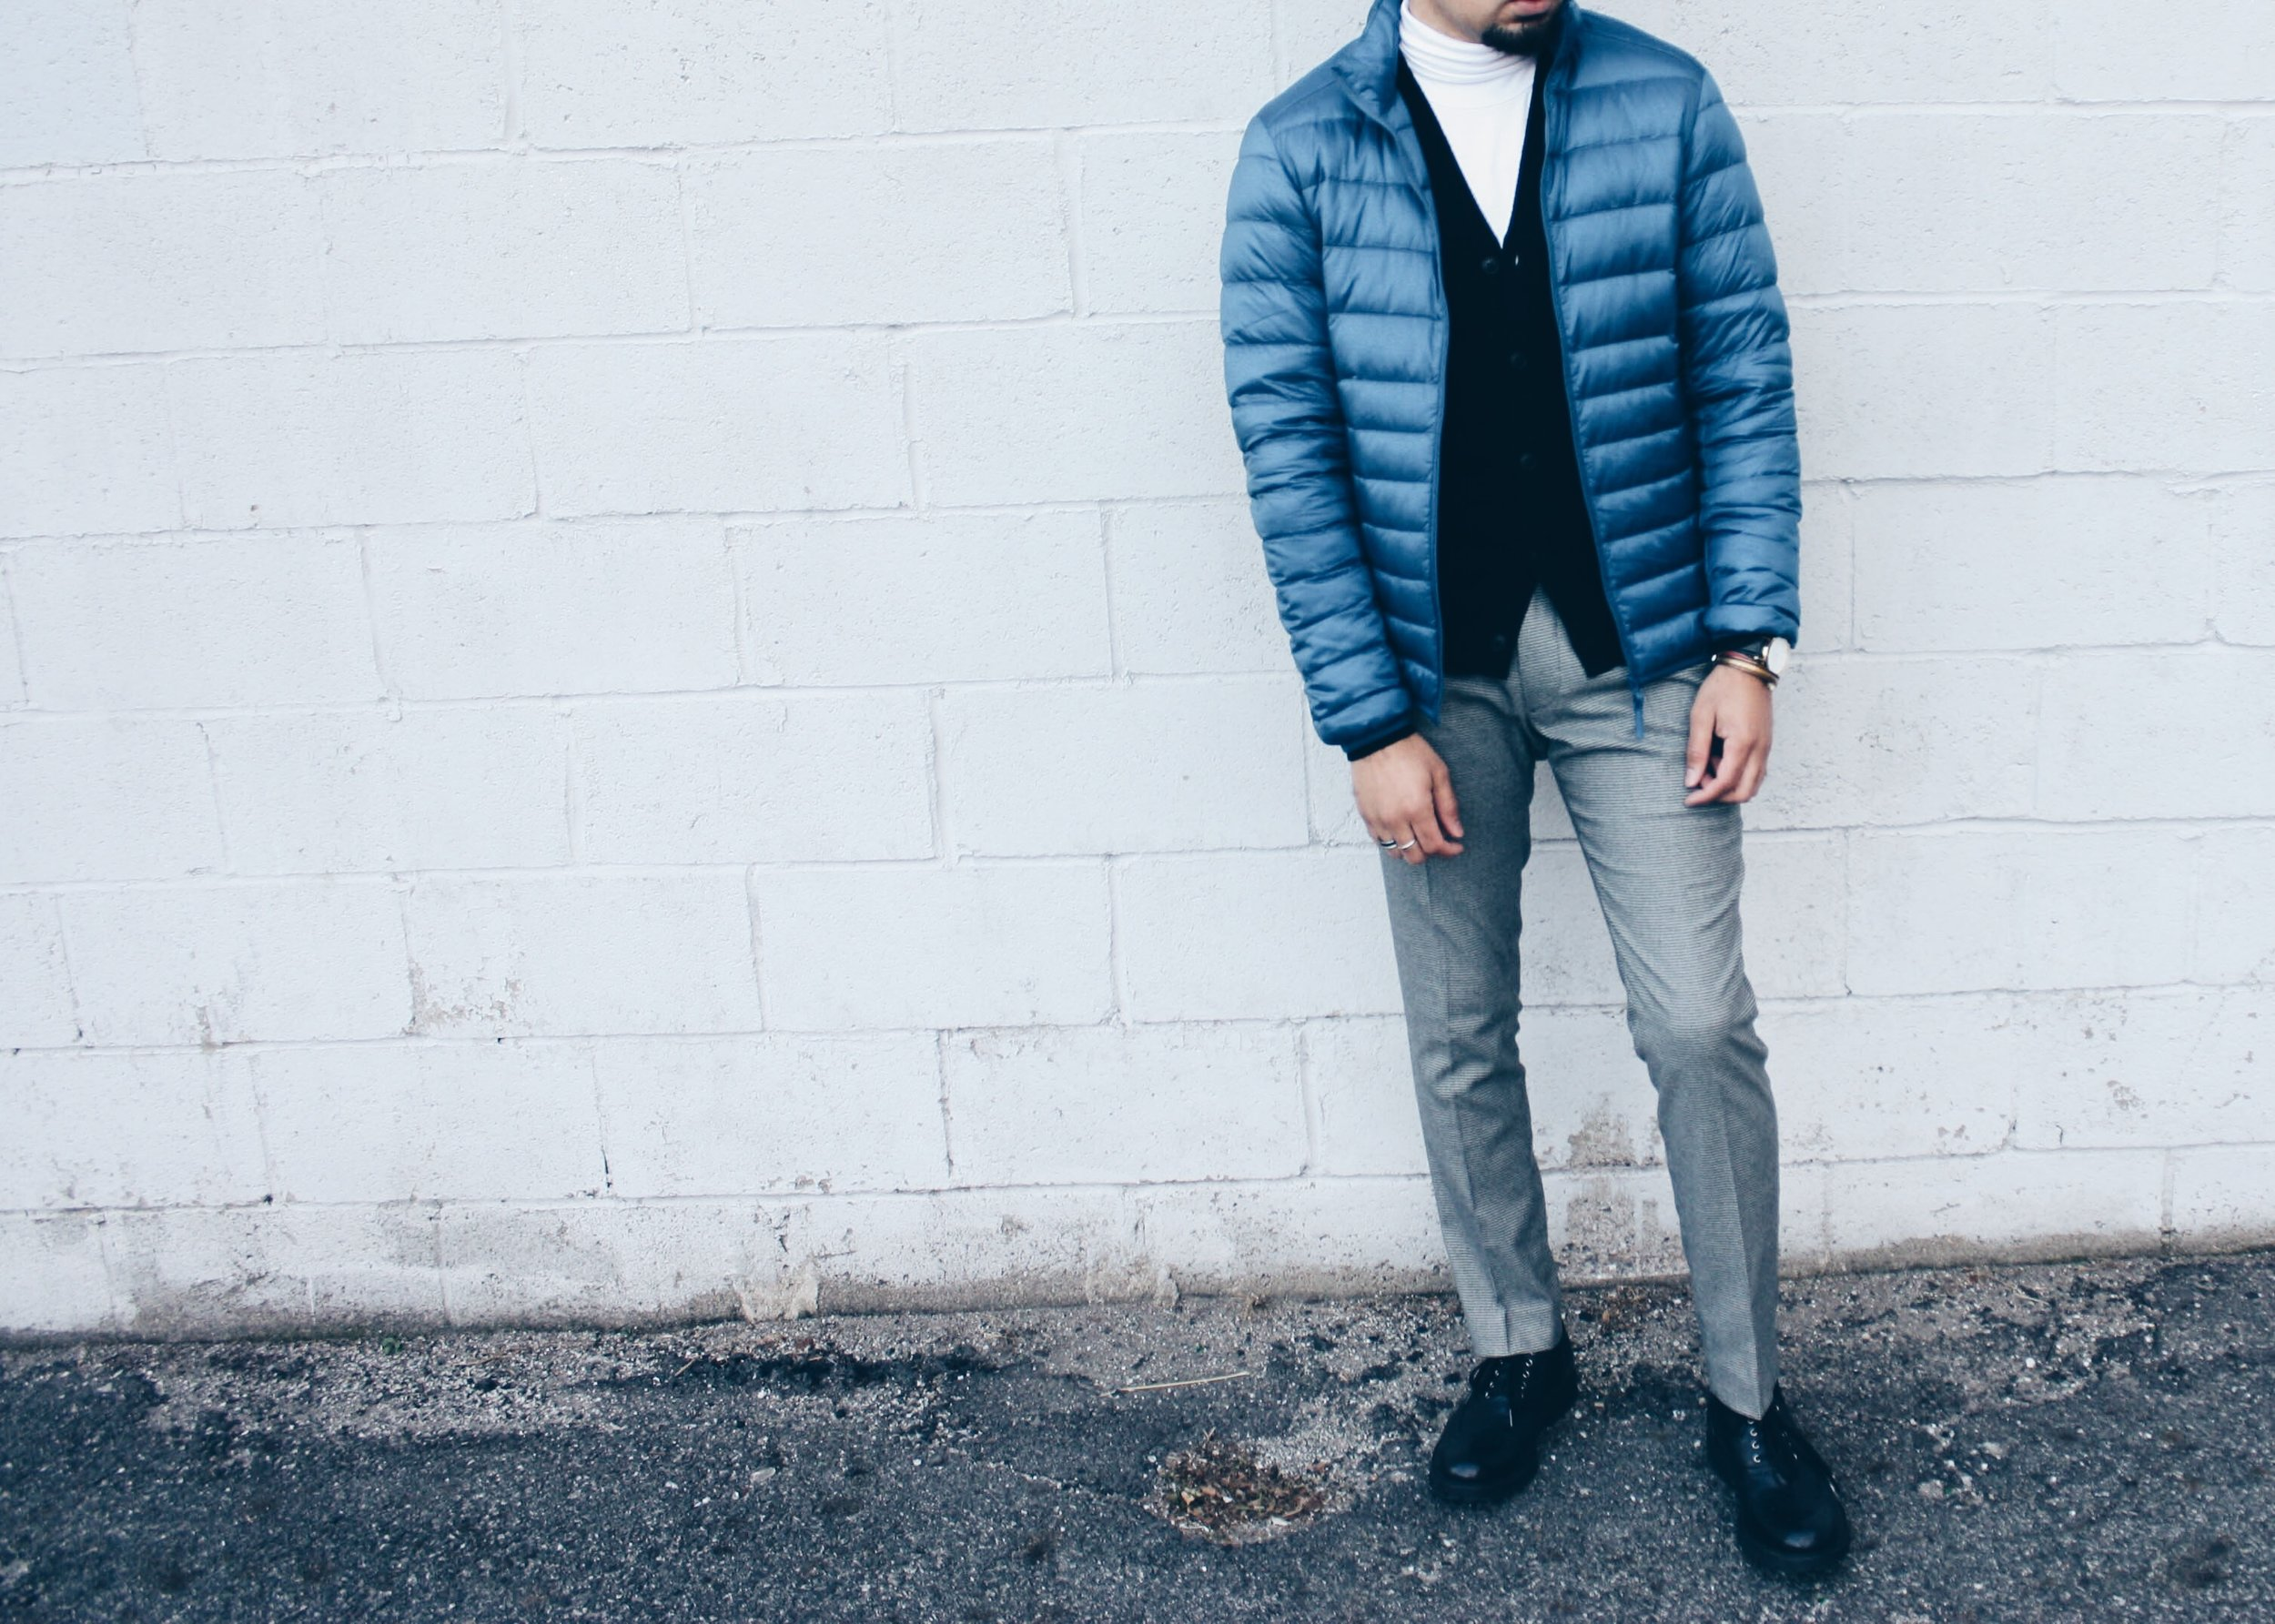 sam-c-perry-uniqlo-heattech-smart-holiday-looks-with-uniqlo-cropped.jpg